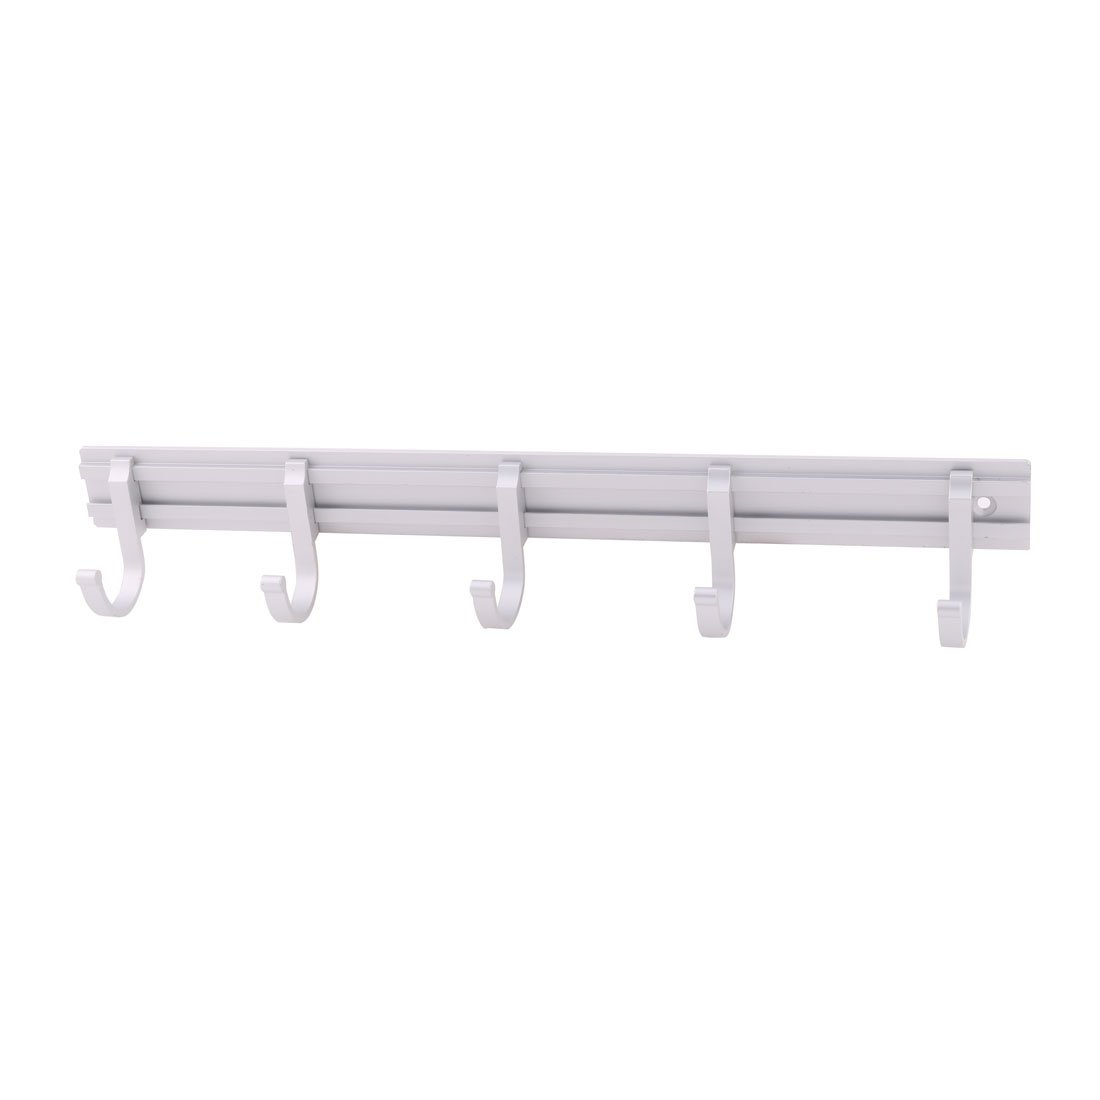 uxcell Aluminum Alloy Hotel Kitchen Cafe Wall Mounted Clothes Jeans Holder Hooks Silver Tone